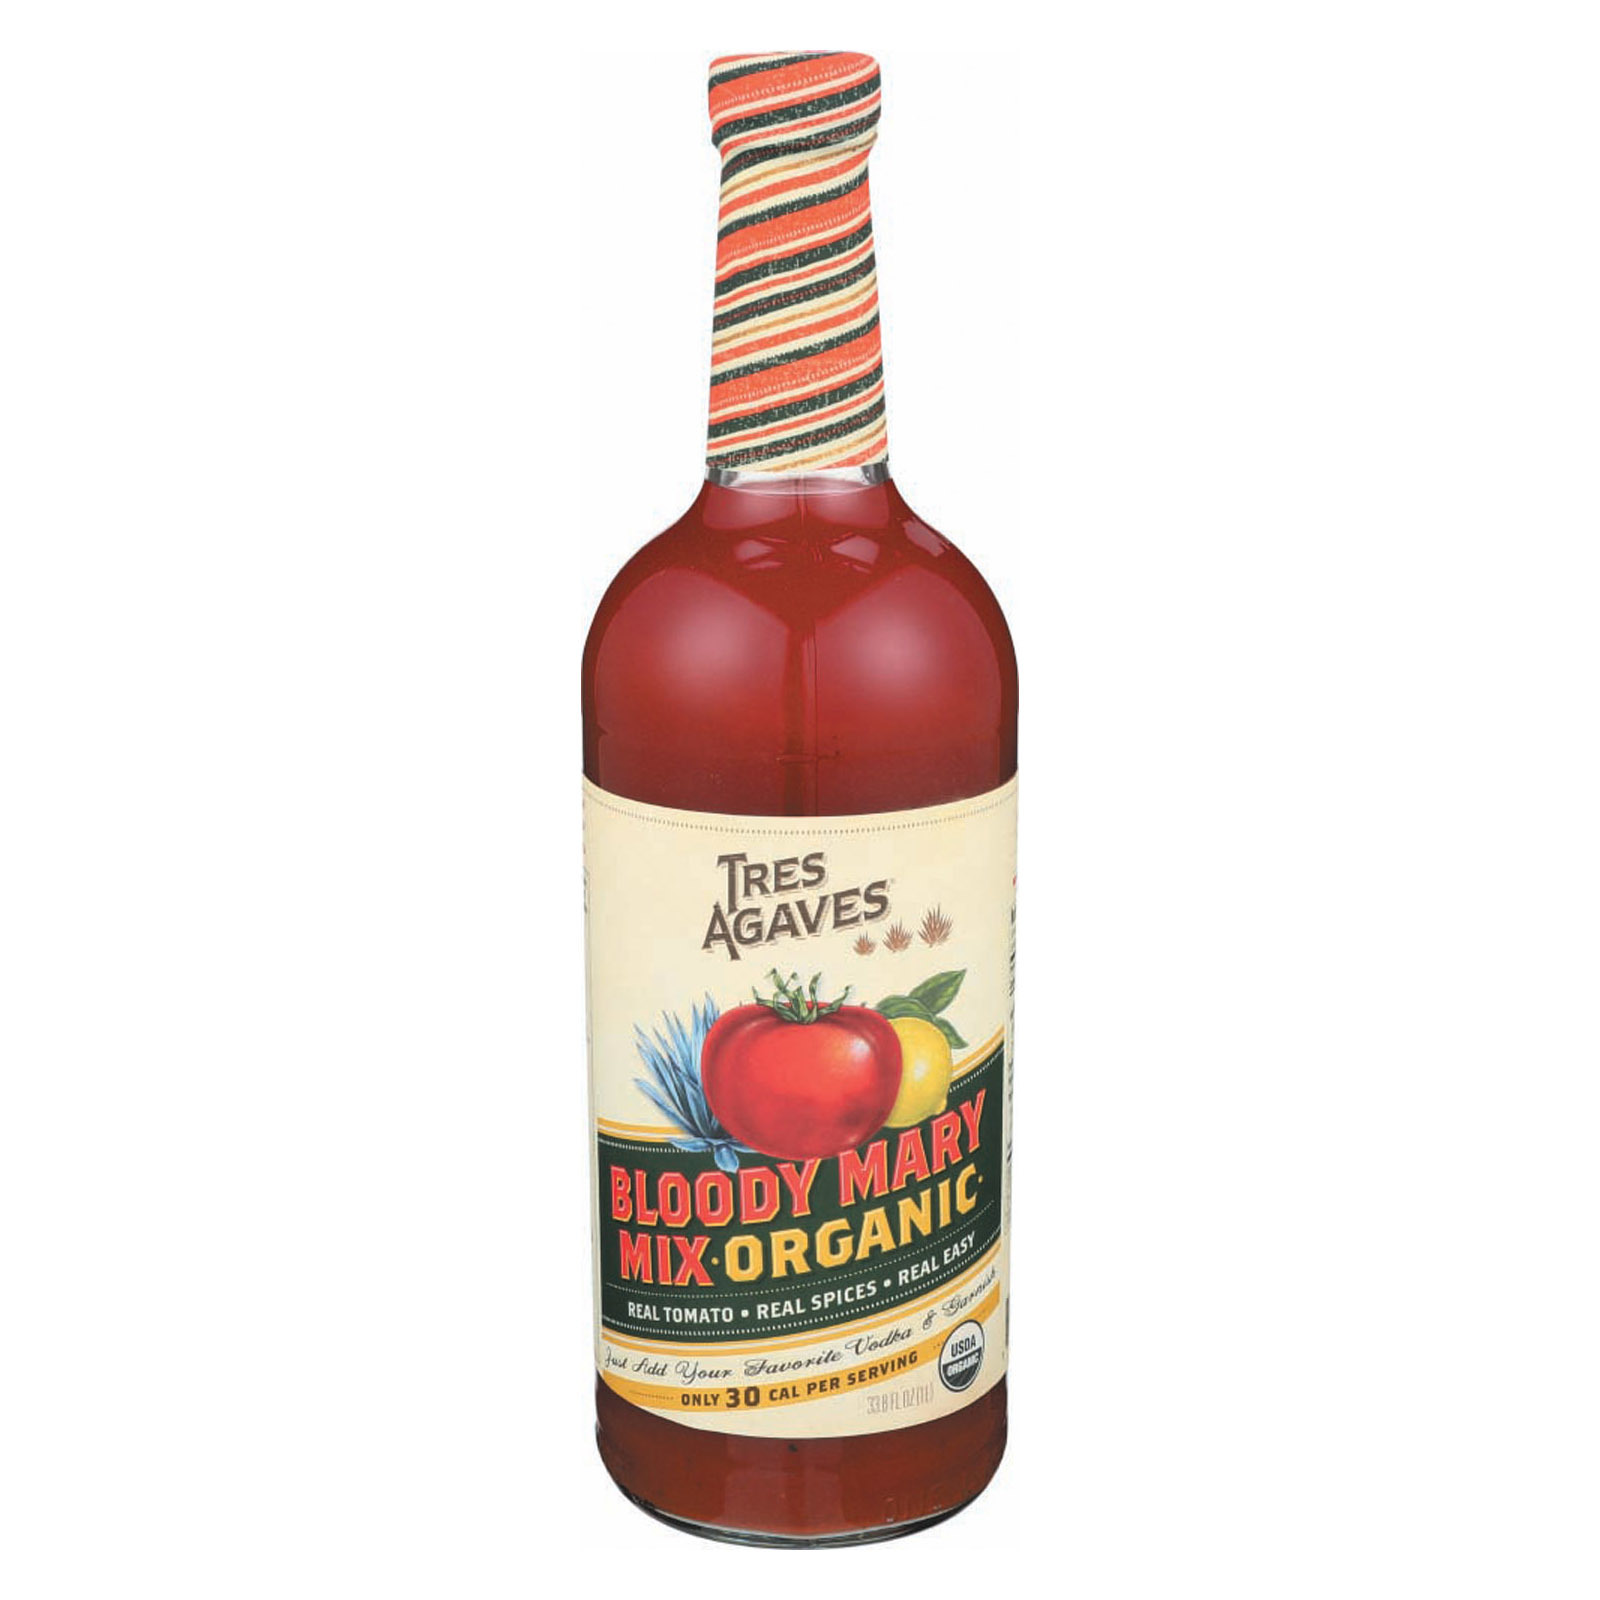 Tres Agaves Mix - Bloody Maria - Case of 12 - 1 LTR